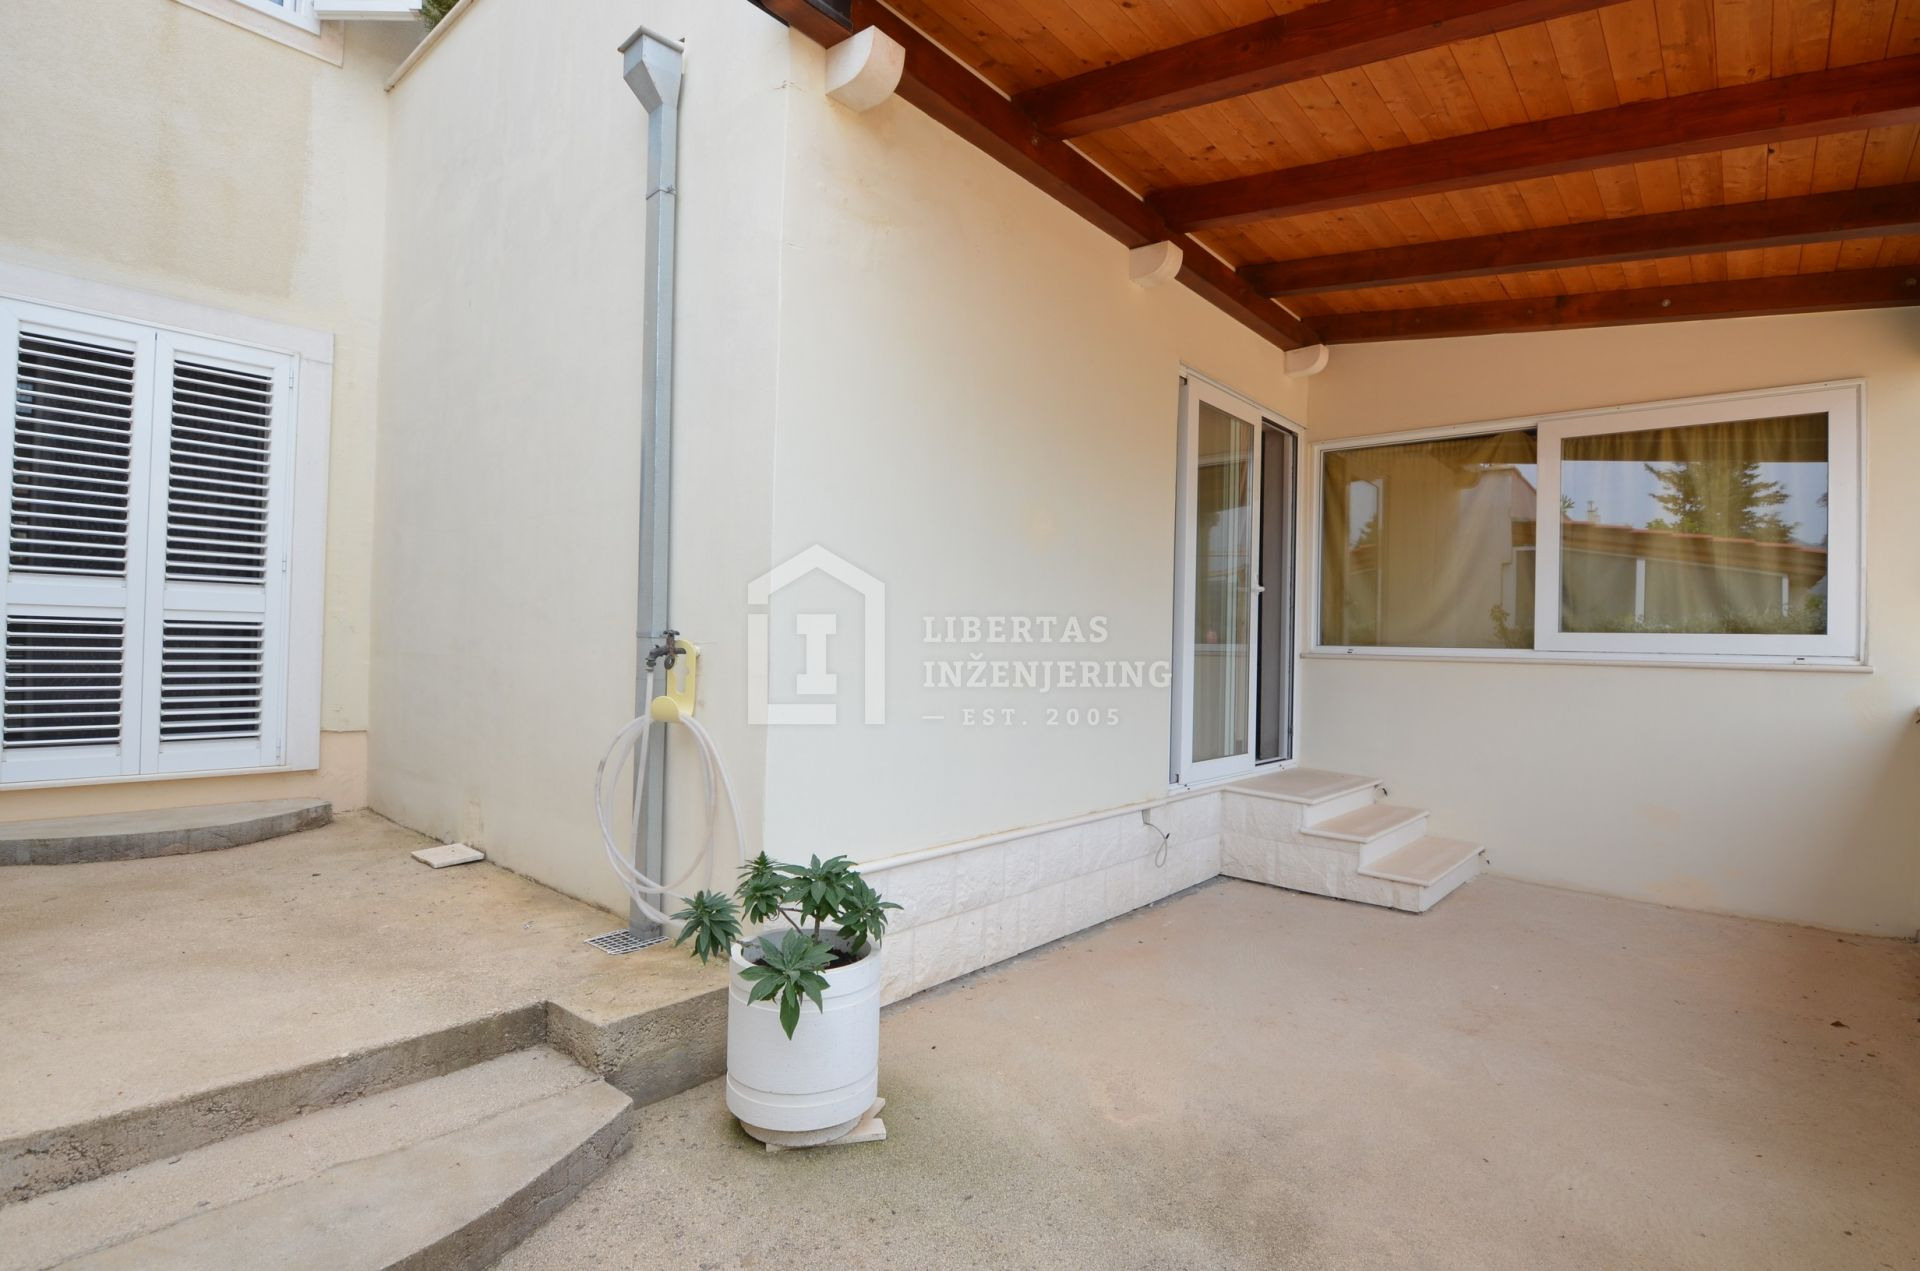 For sale spacious house in excellent condition / GOOD VALUE